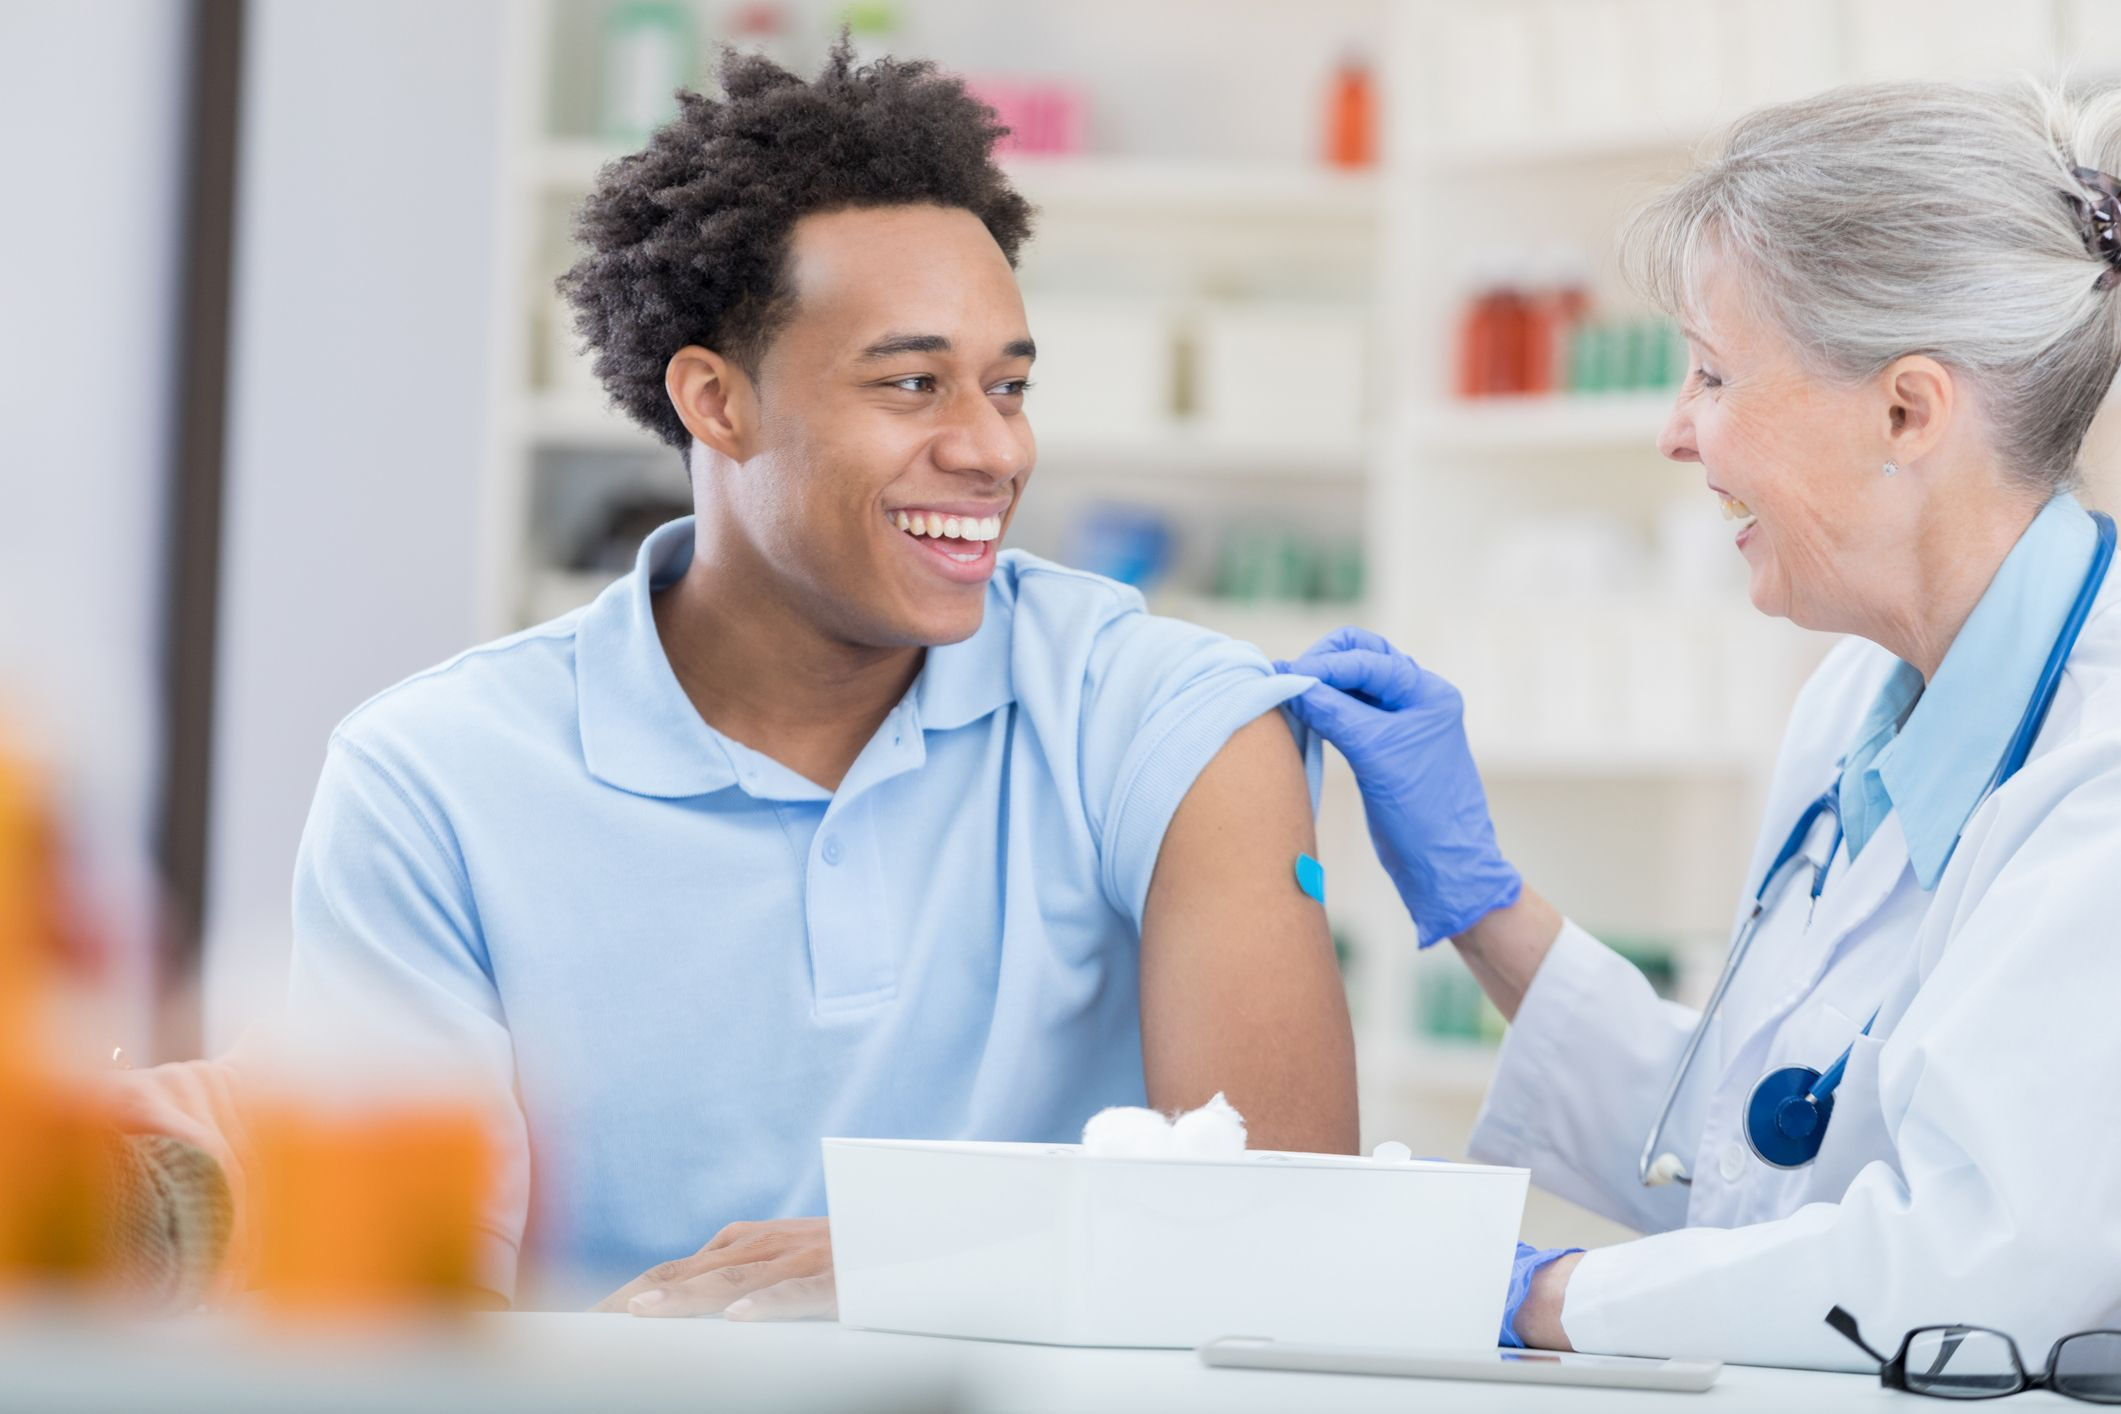 Where to Get the Flu Shot for the 2019-2020 Season, According to a Doctor